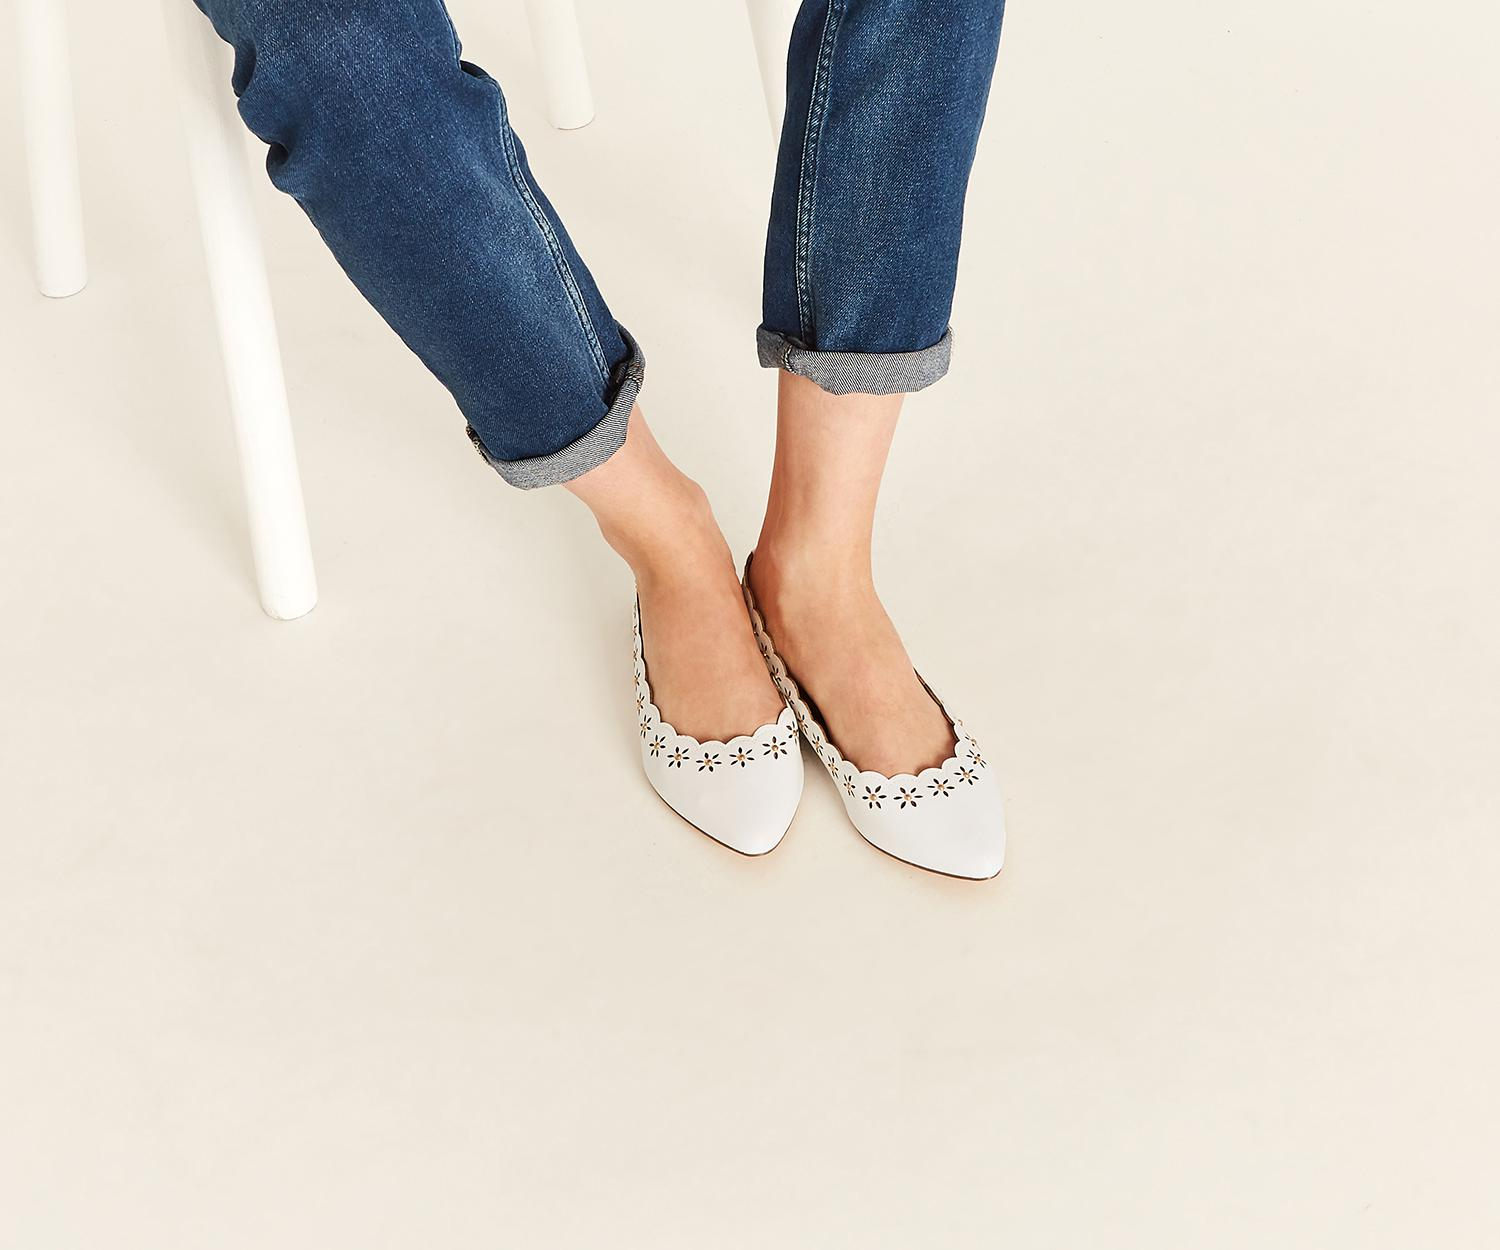 outlet new White cutout scallop flats sale lowest price free shipping manchester great sale qd71Ka